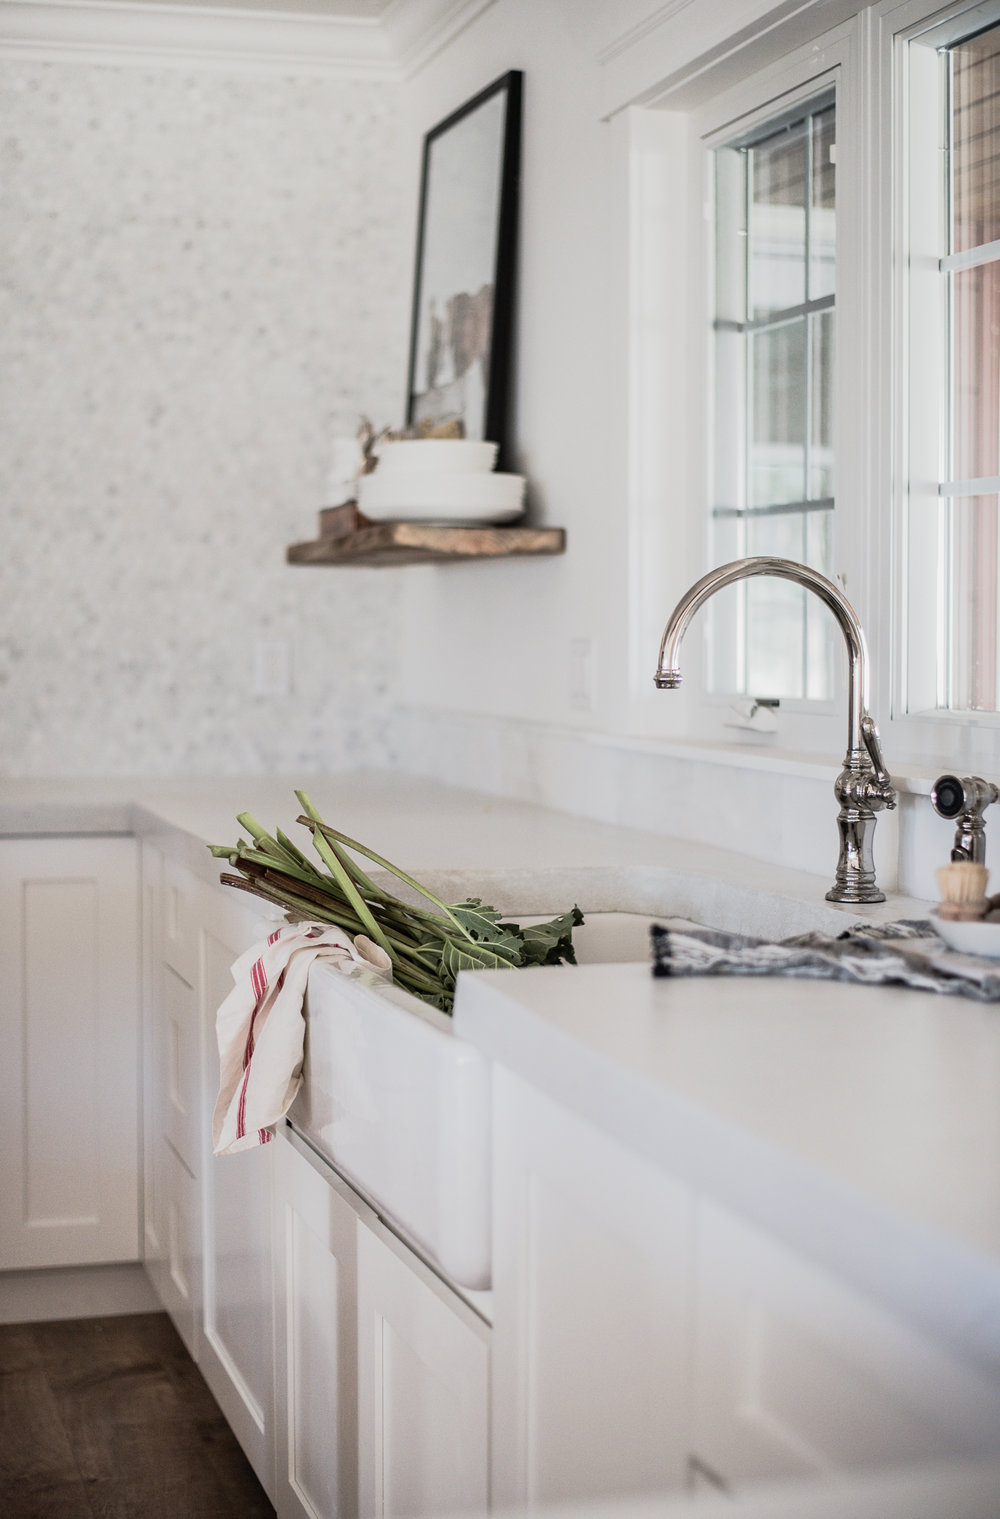 White Concrete Countertops in White Farmhouse Kitchen | boxwoodavenue.com